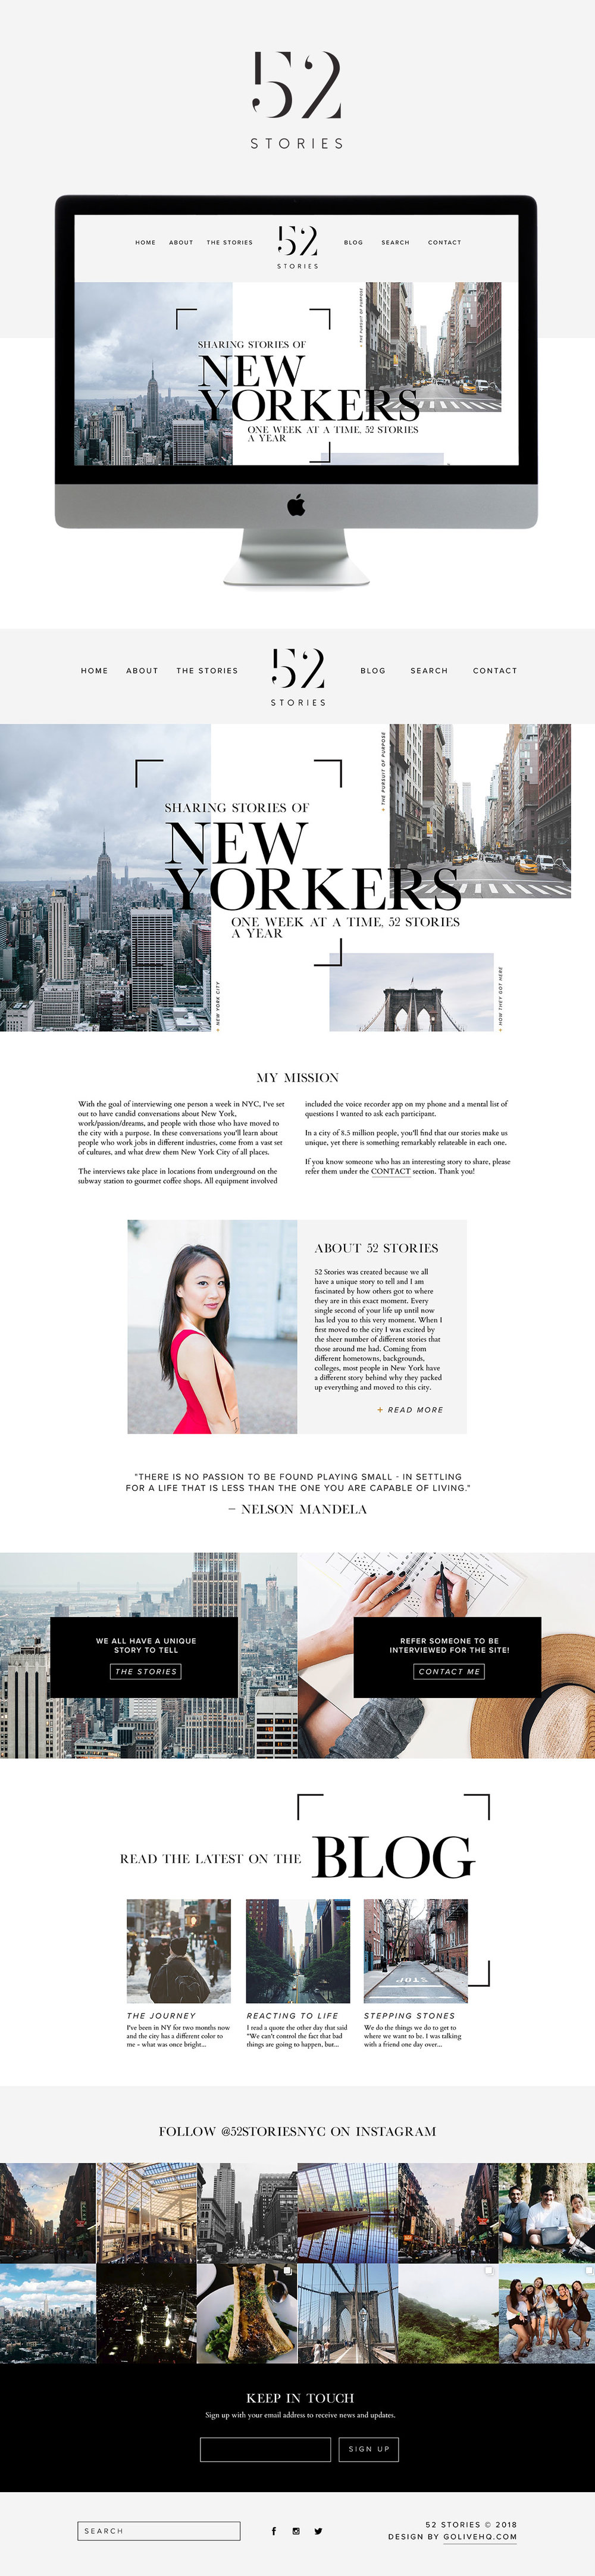 Clean modern website design by Go Live Hq